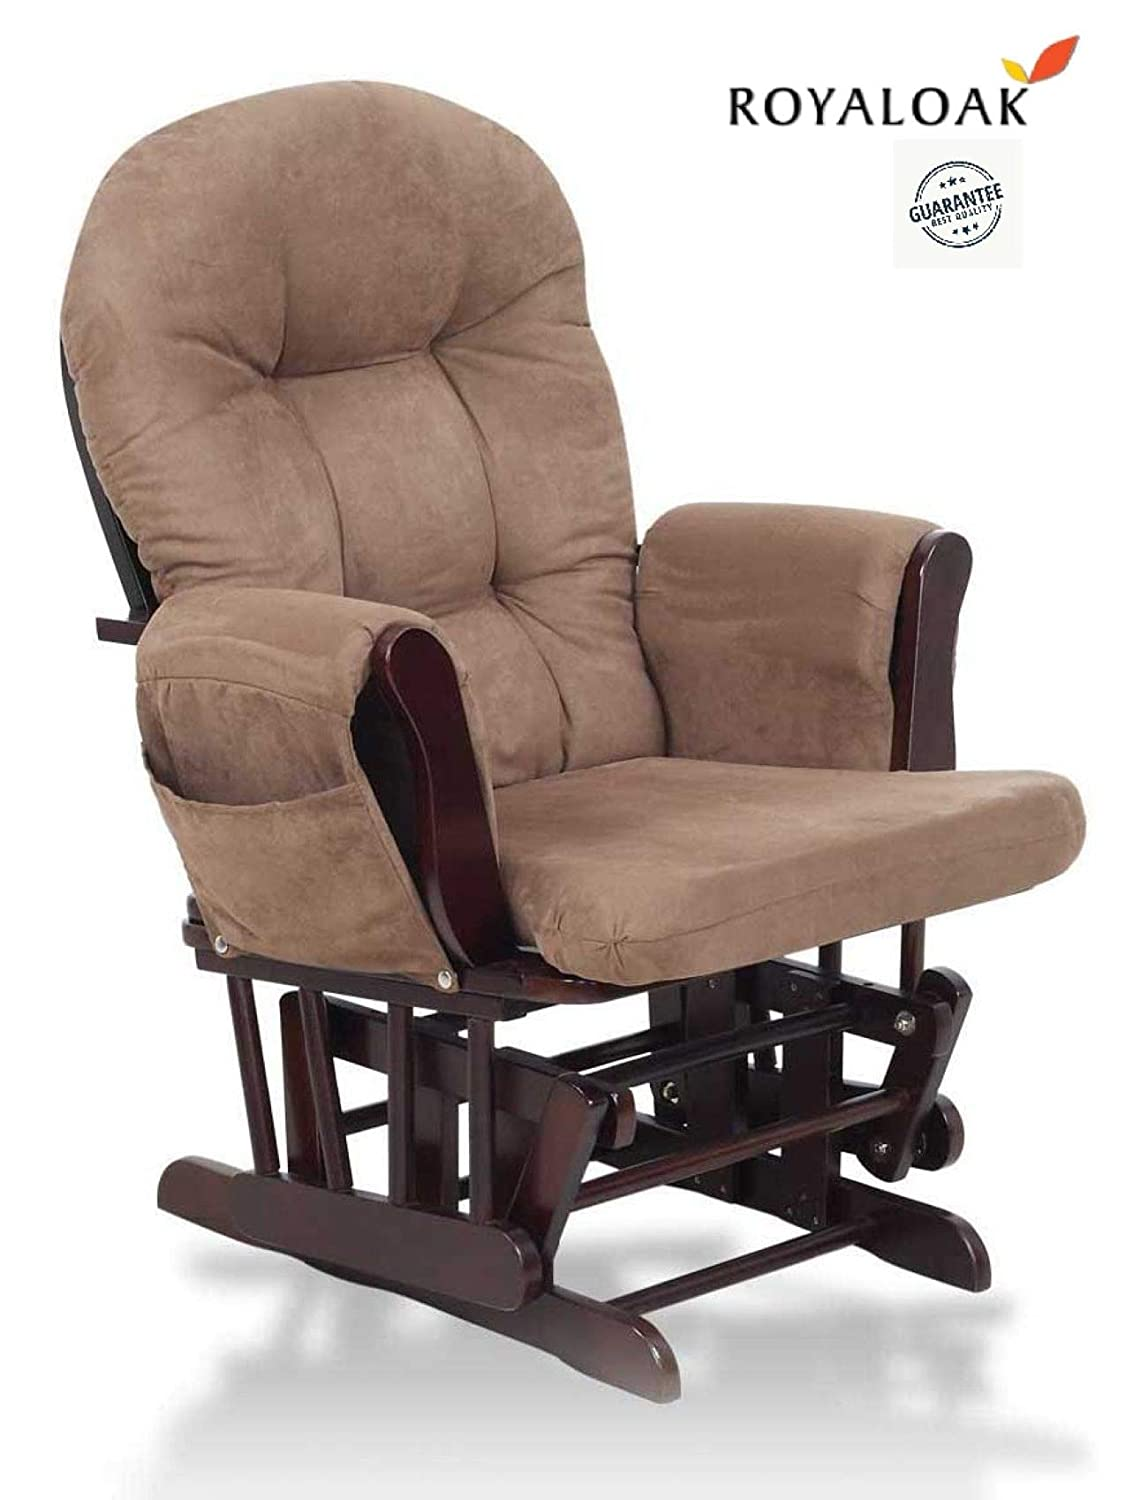 Admirable Royal Oak Trinity Rocking Chair Brown Gamerscity Chair Design For Home Gamerscityorg